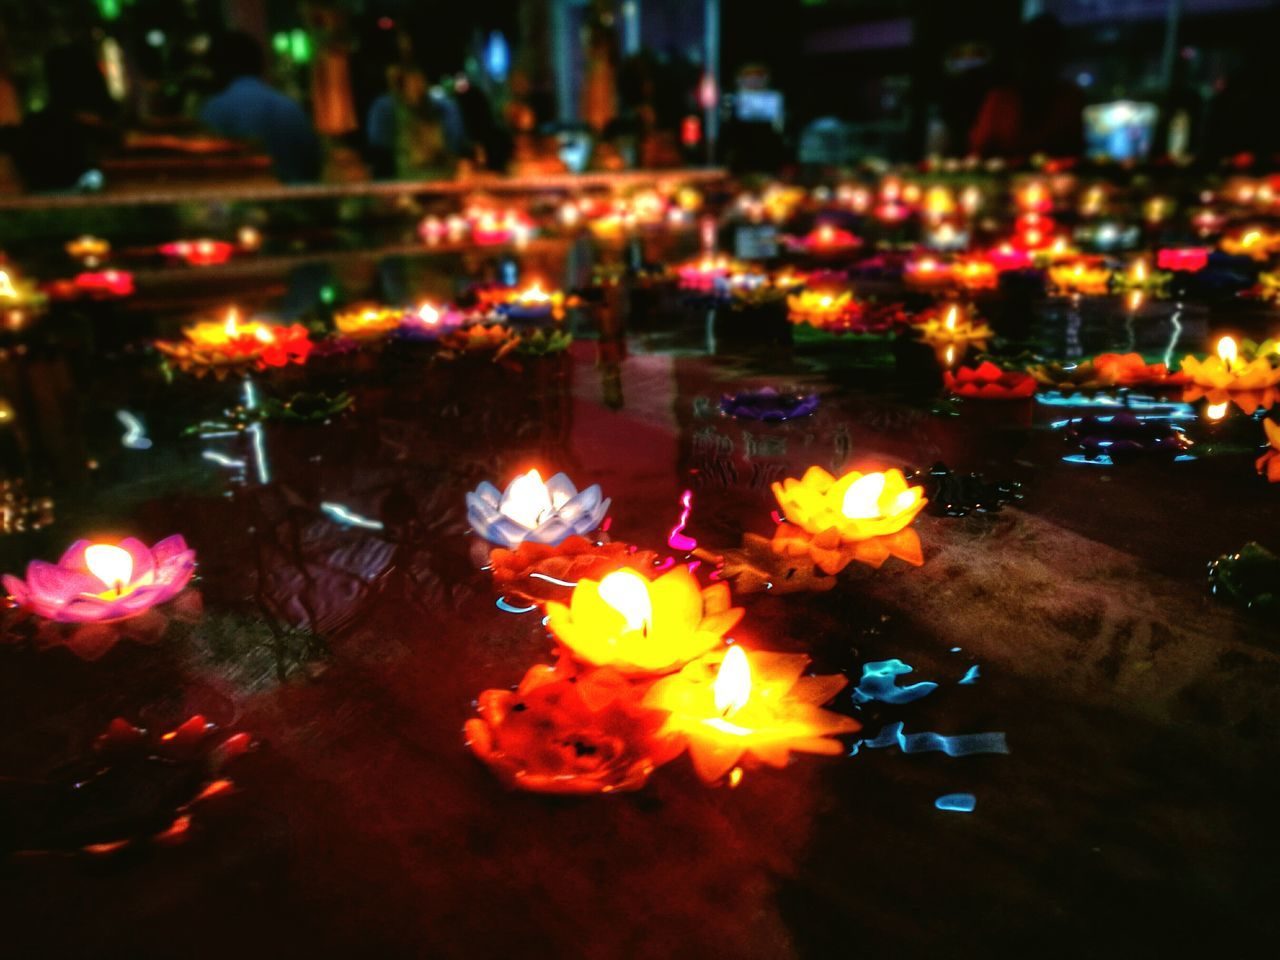 flame, burning, illuminated, night, candle, glowing, heat - temperature, tea light, no people, flower, outdoors, spirituality, nature, water, city